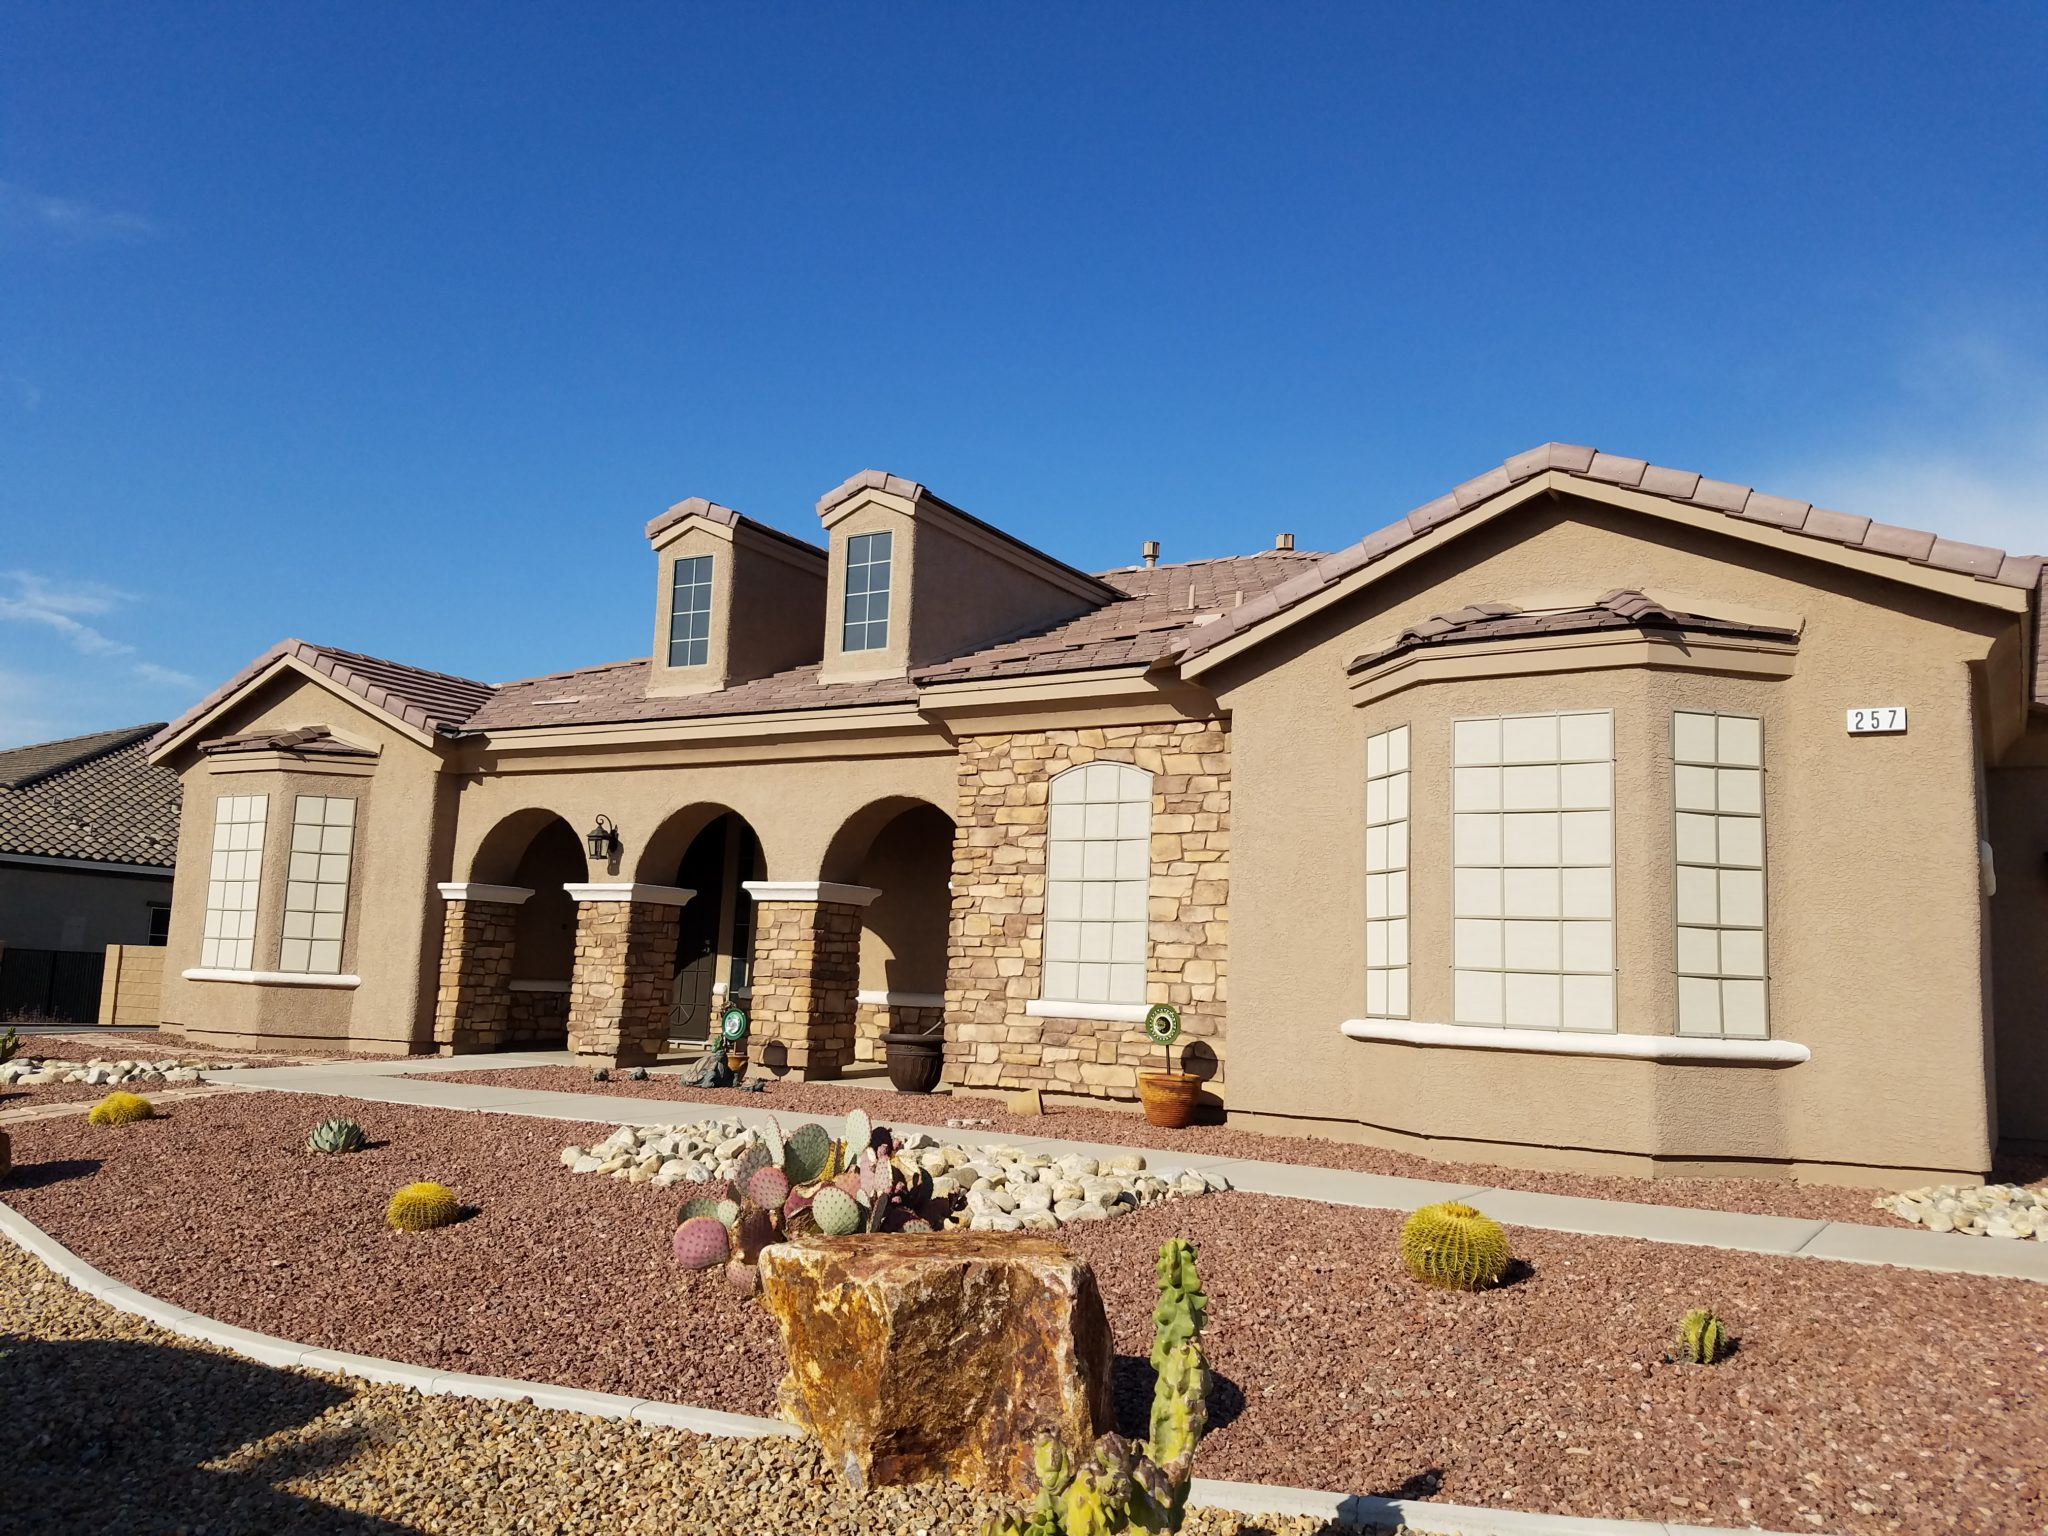 1 story home with solar screens two different colors